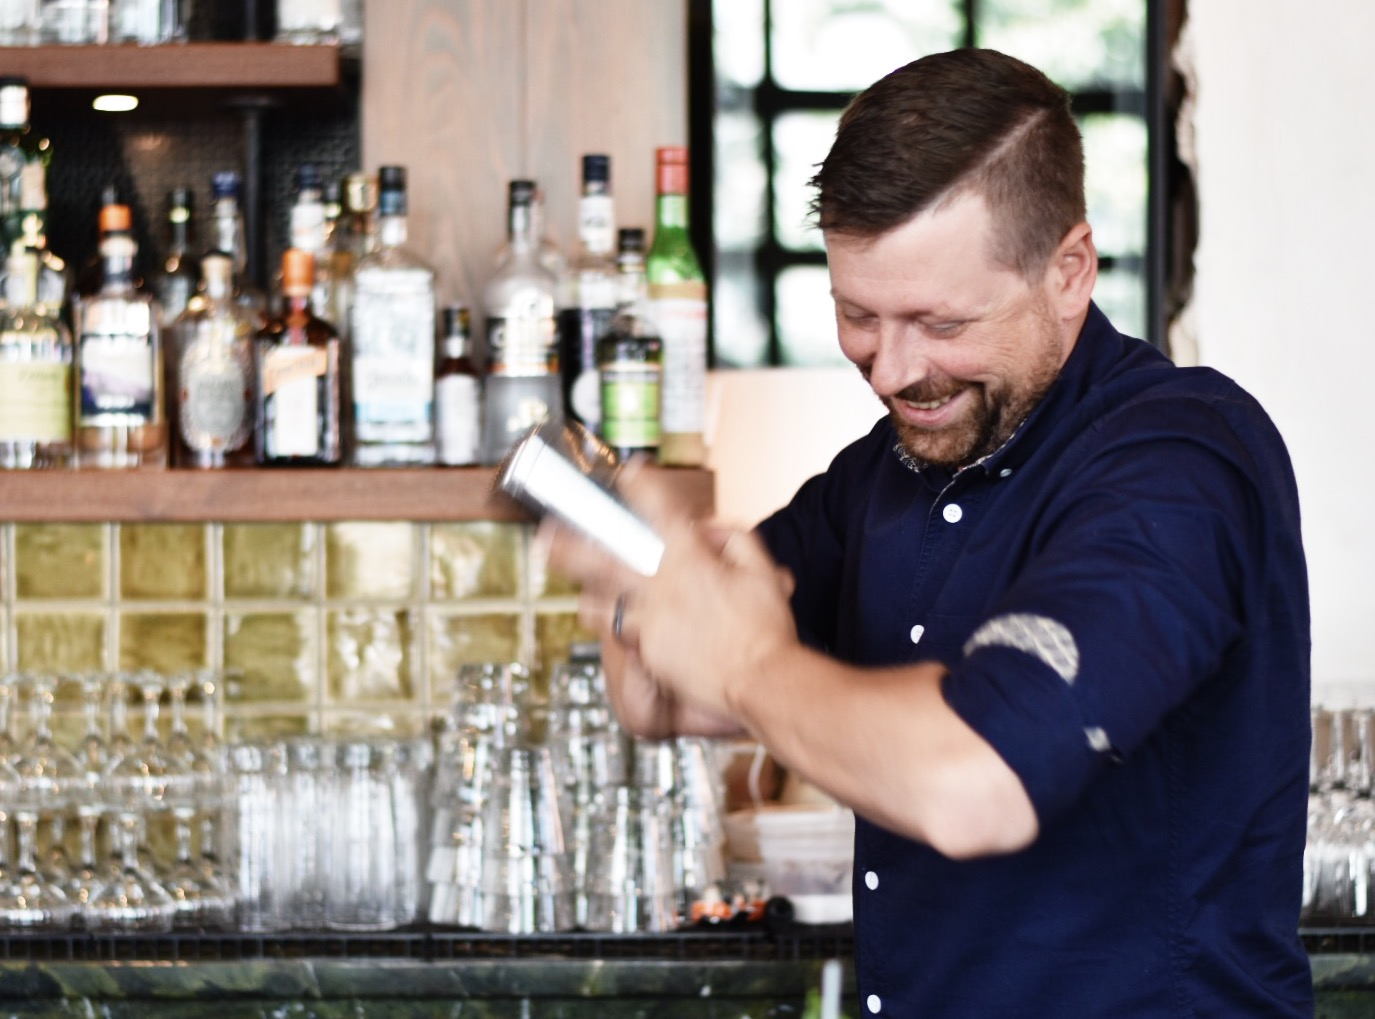 UNCLE GEORGE'S GIN AND TONIC -- Drea Marie shares how to mix up THE BEST summer cocktails! Packwood grand is the event of the summer. Check it out!!!